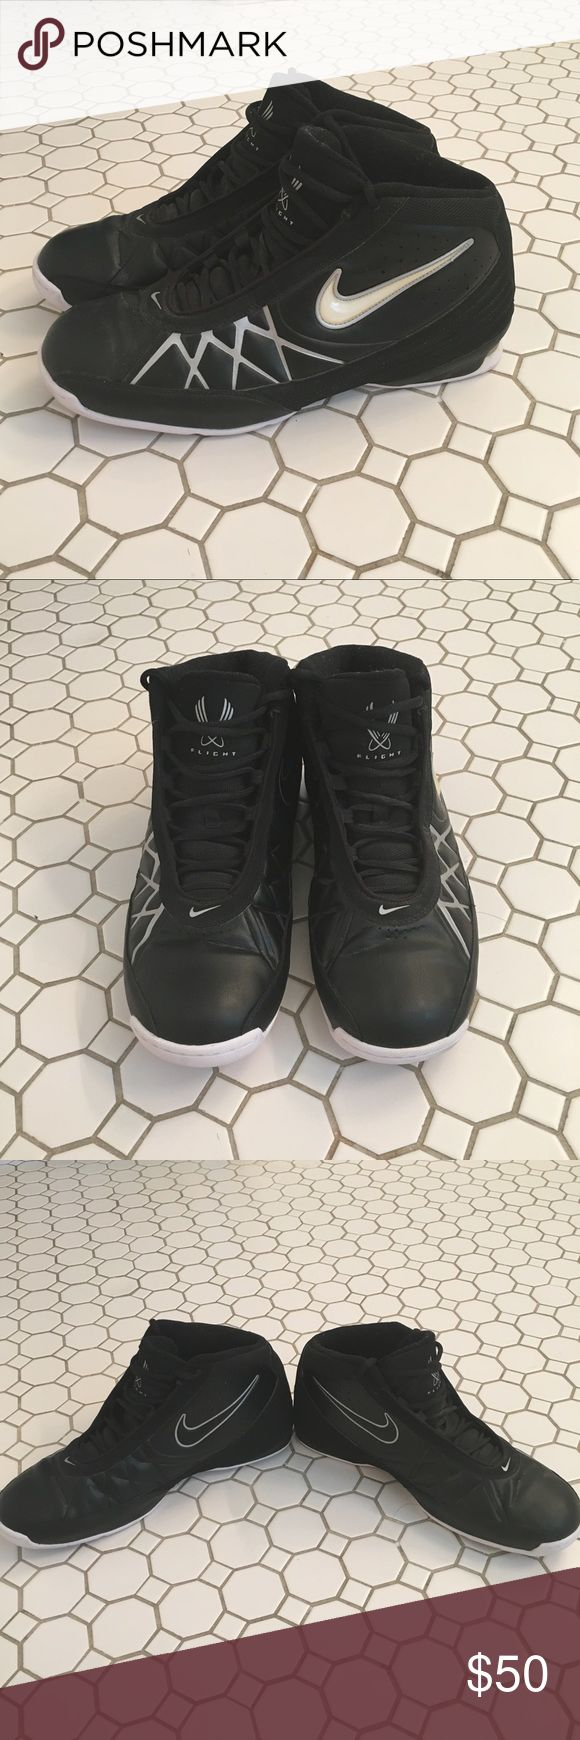 Nike Air Flight Black and white Nike Air Flight high tops in size 13 Nike Shoes Athletic Shoes